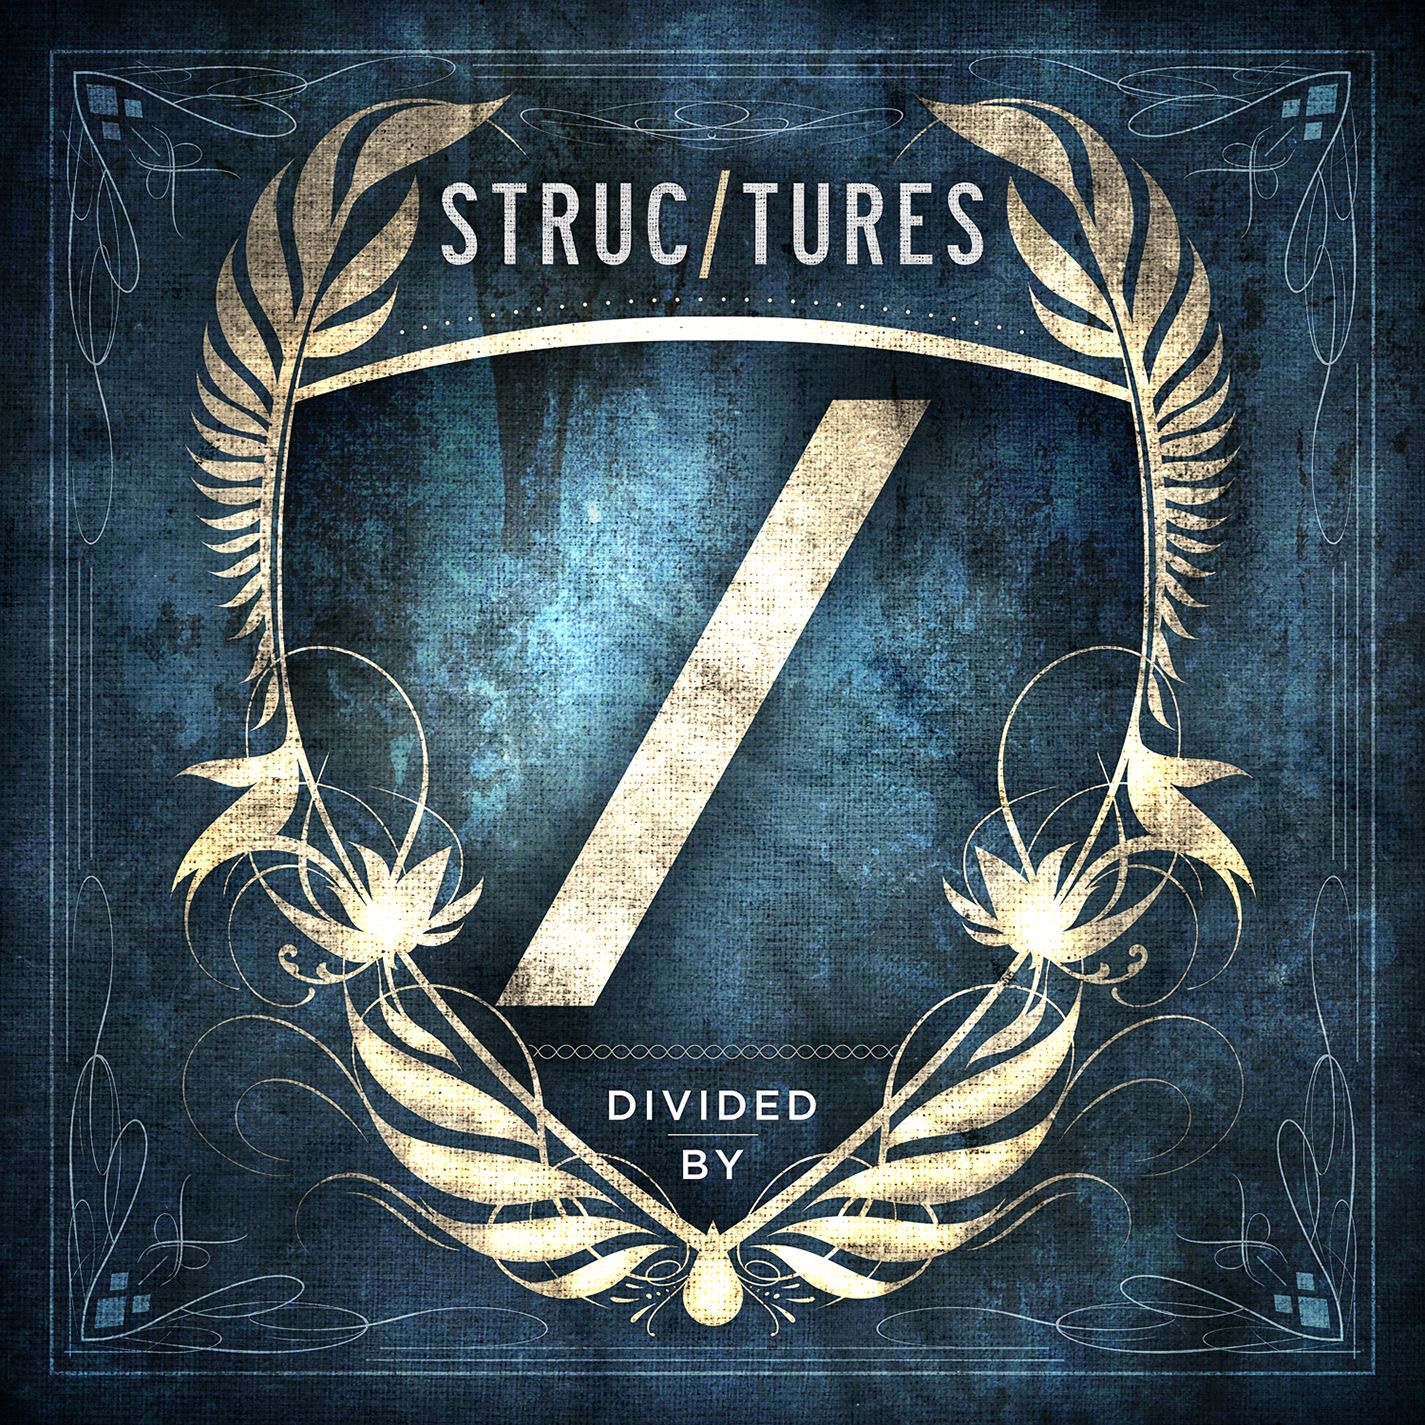 Structures - Divided By (2011)